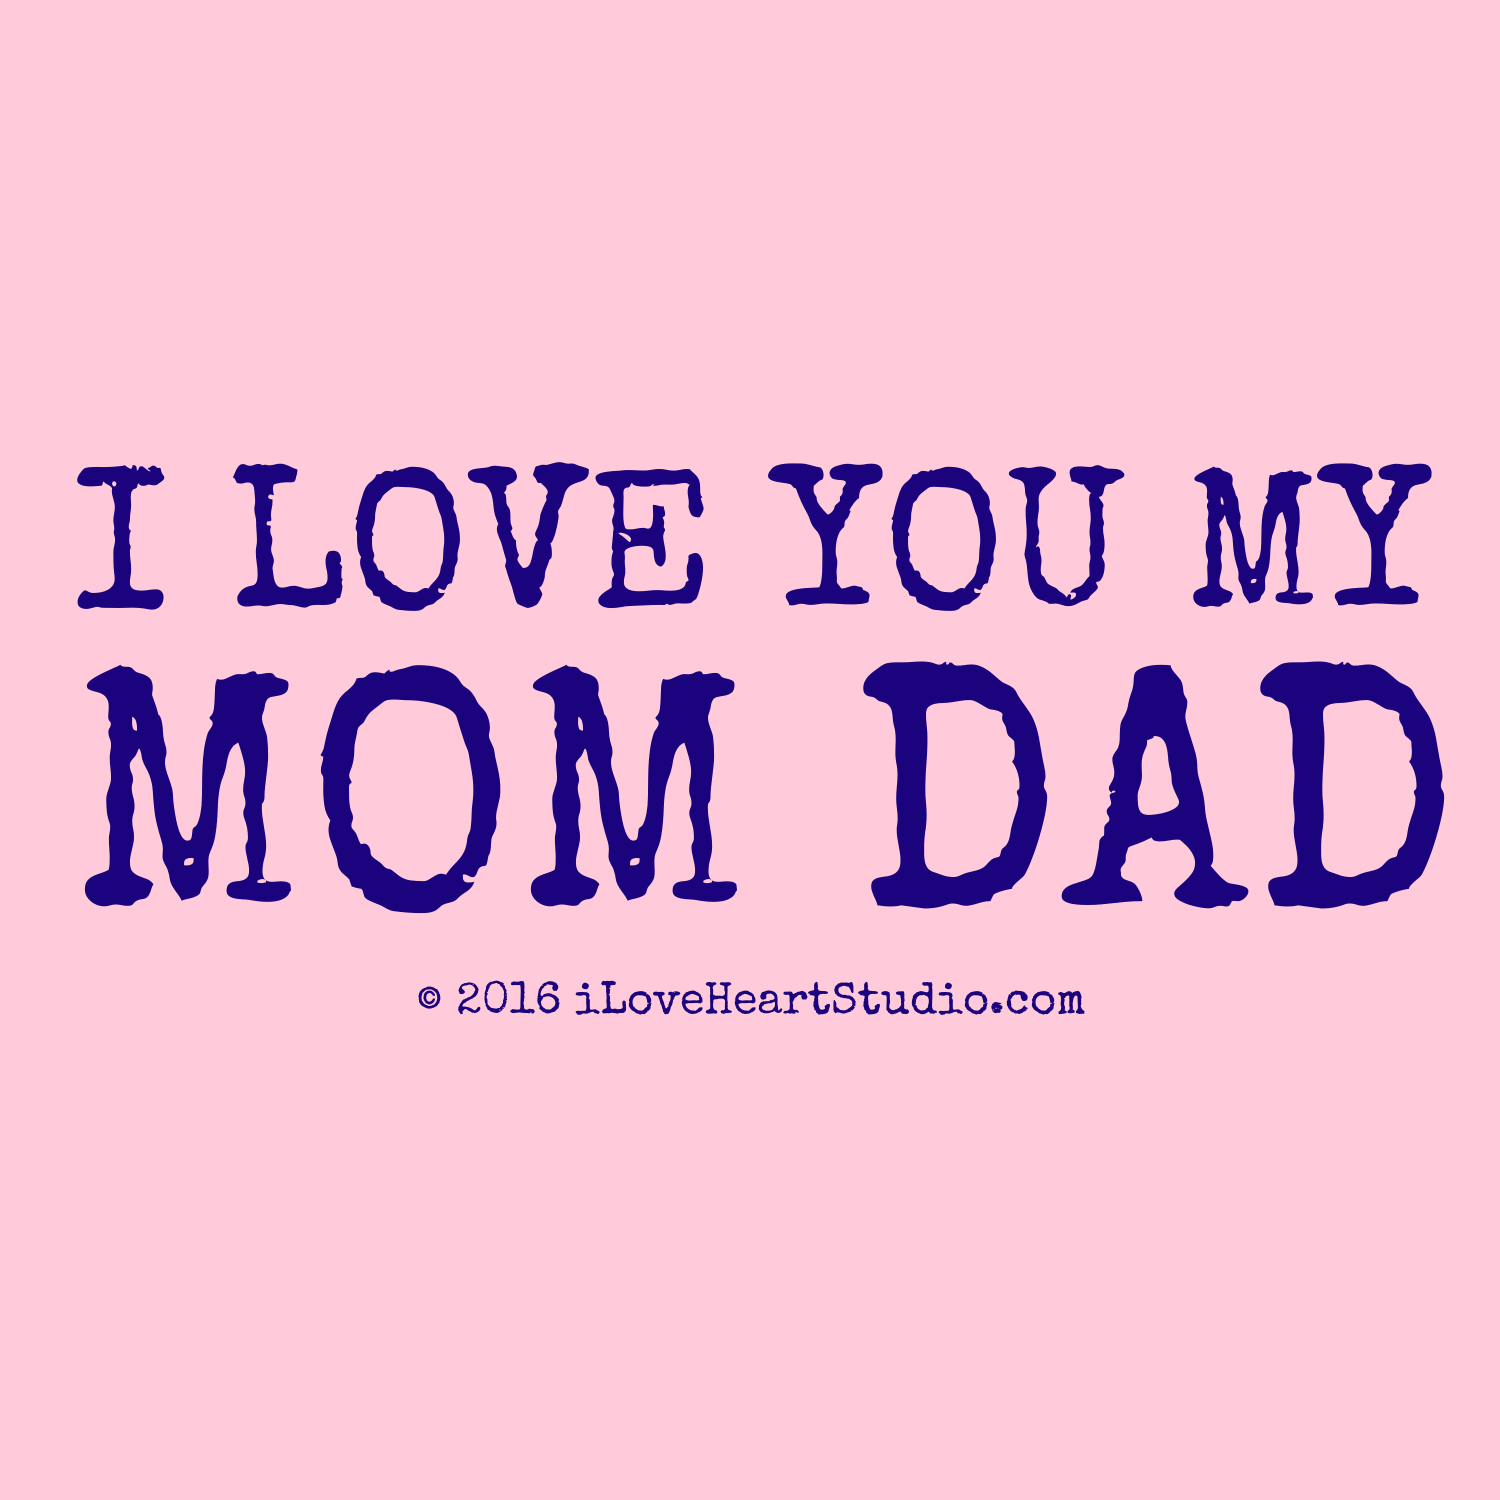 i love you my mom dad